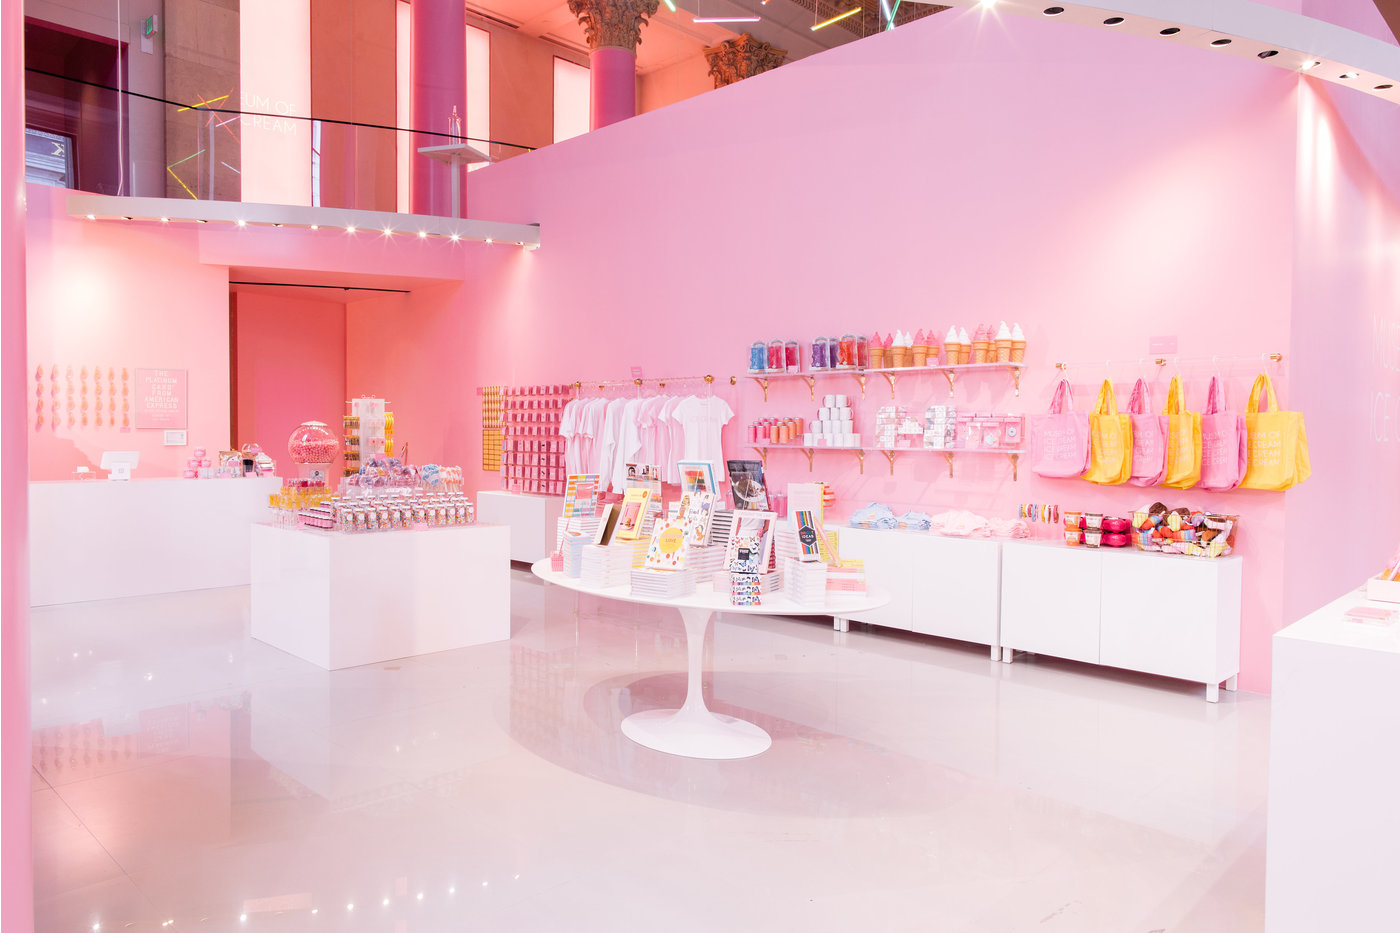 Retail Operations Assistant 0095 Job At Museum Of Ice Cream In